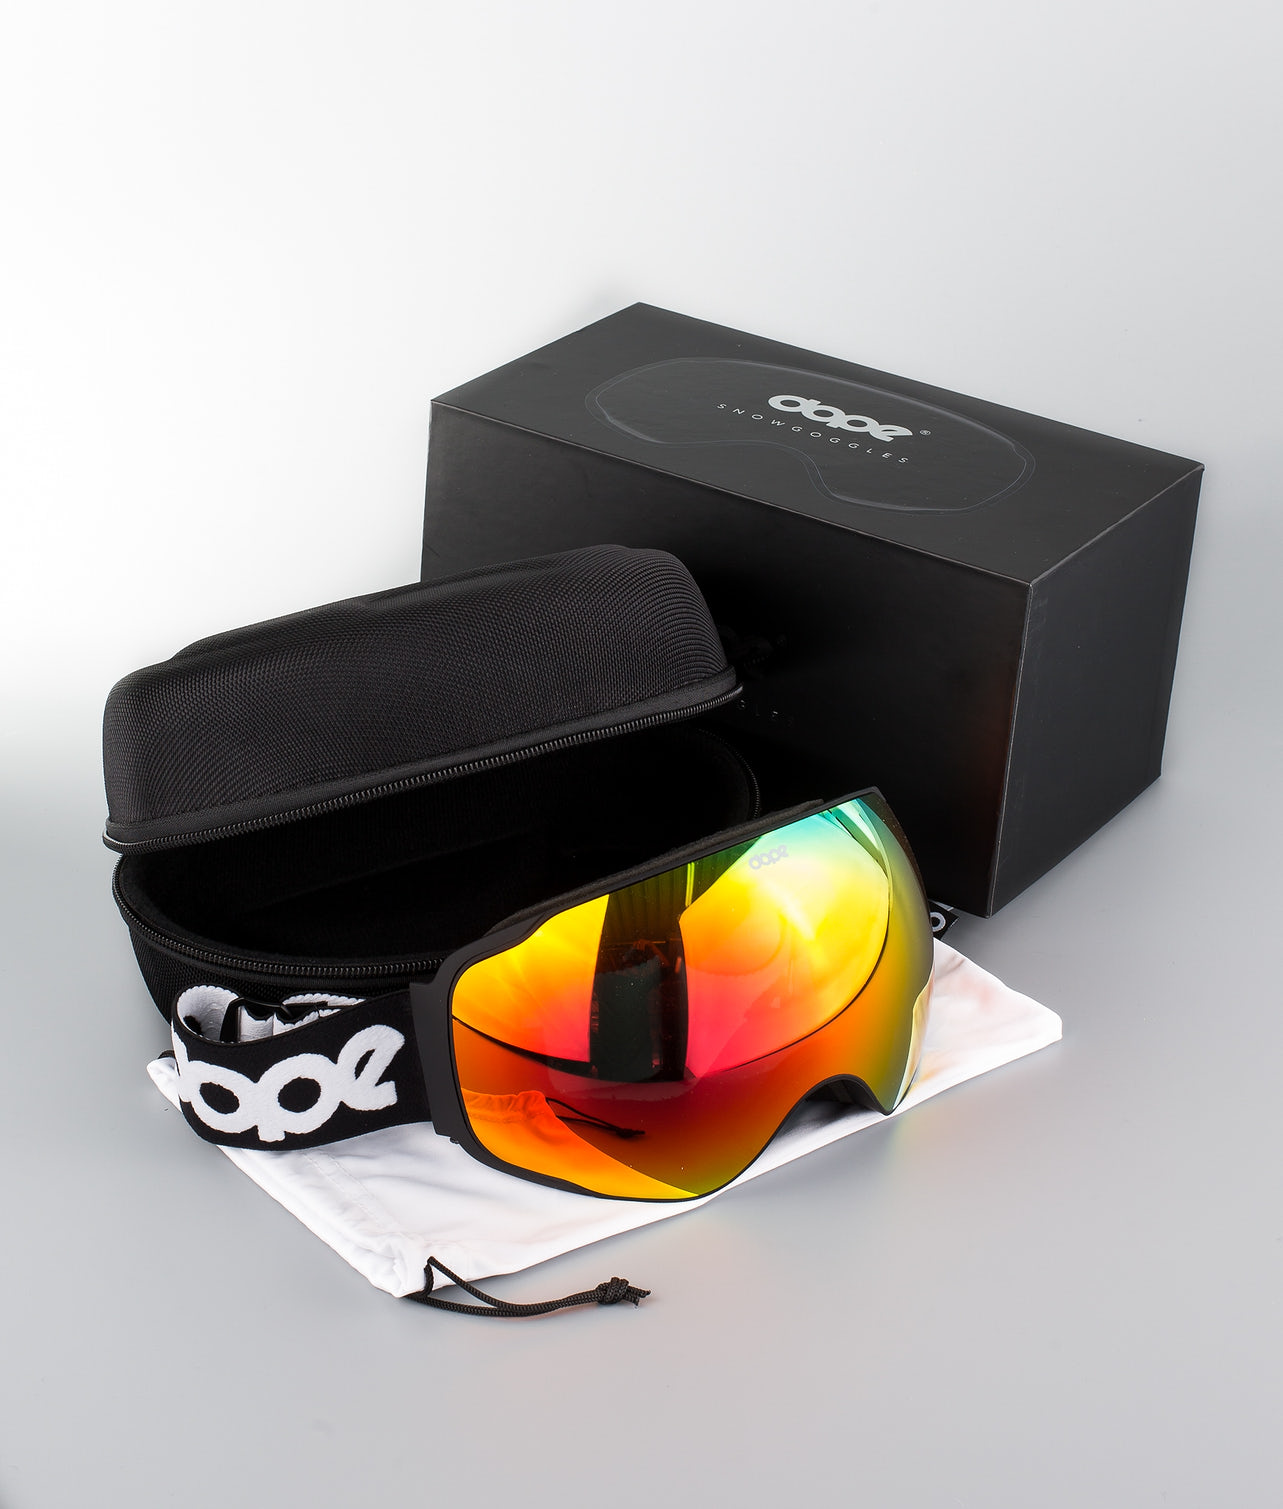 Buy Sphere OG Ski Goggle from Dope at Ridestore.com - Always free shipping, free returns and 30 days money back guarantee